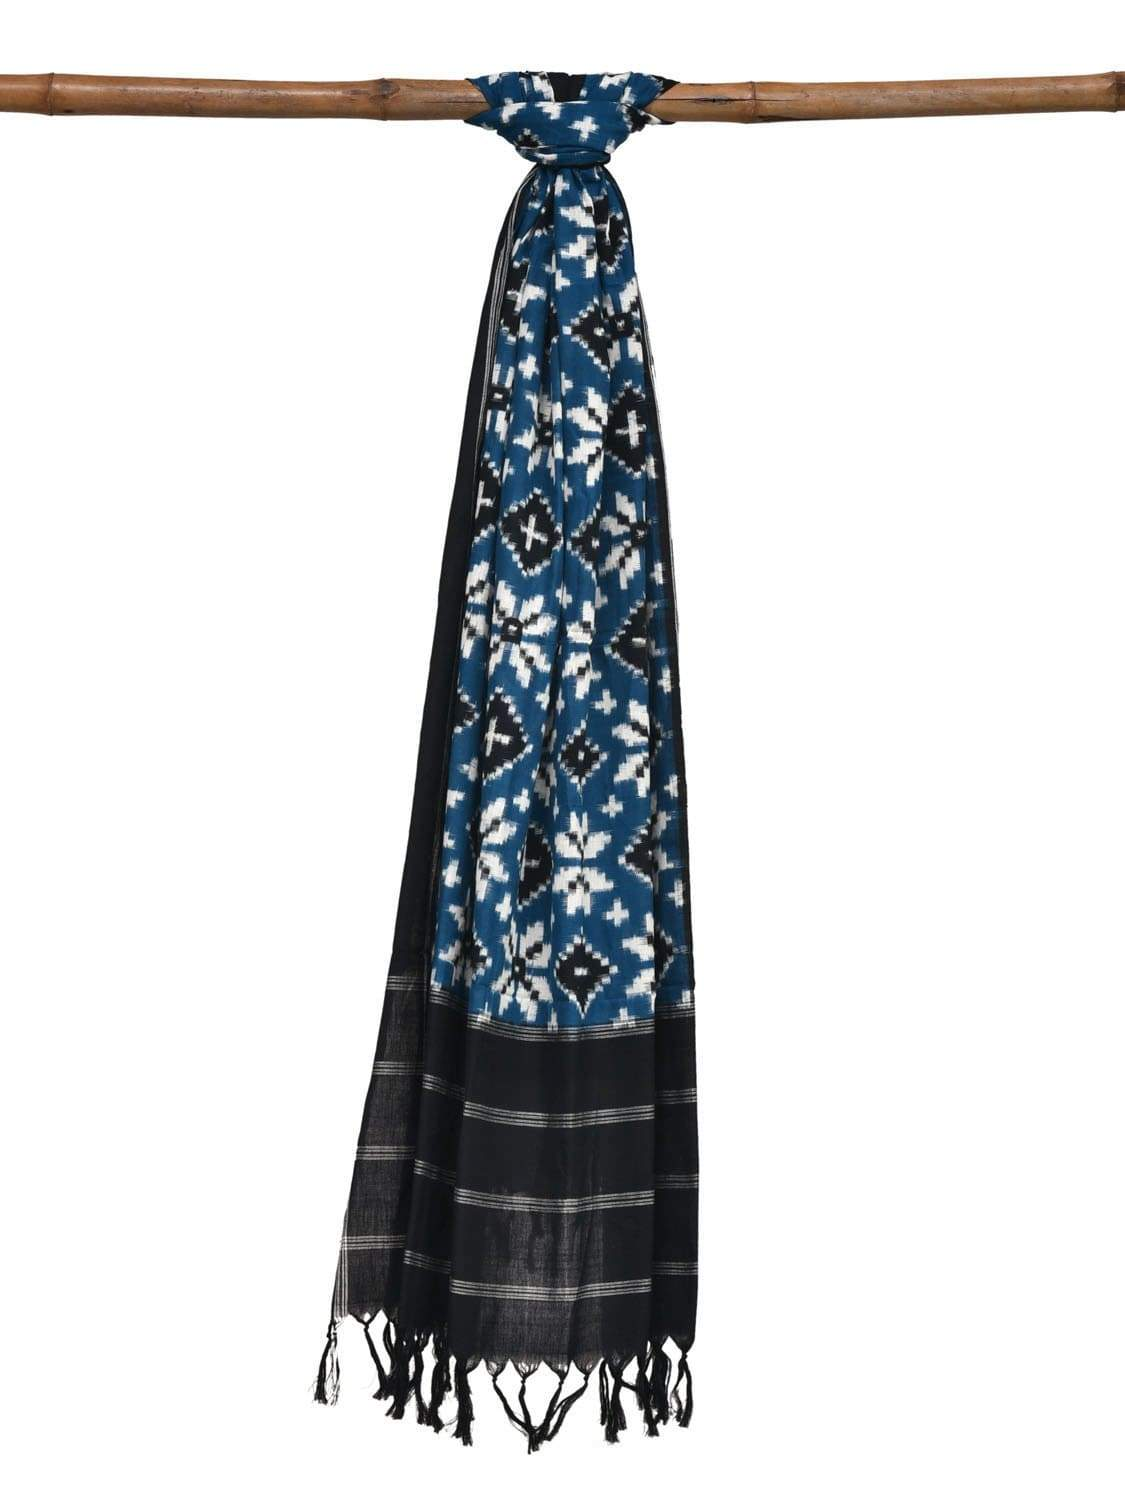 Teal and White Pochampally Ikat Cotton Handloom Dupatta with Telia Design ds1898